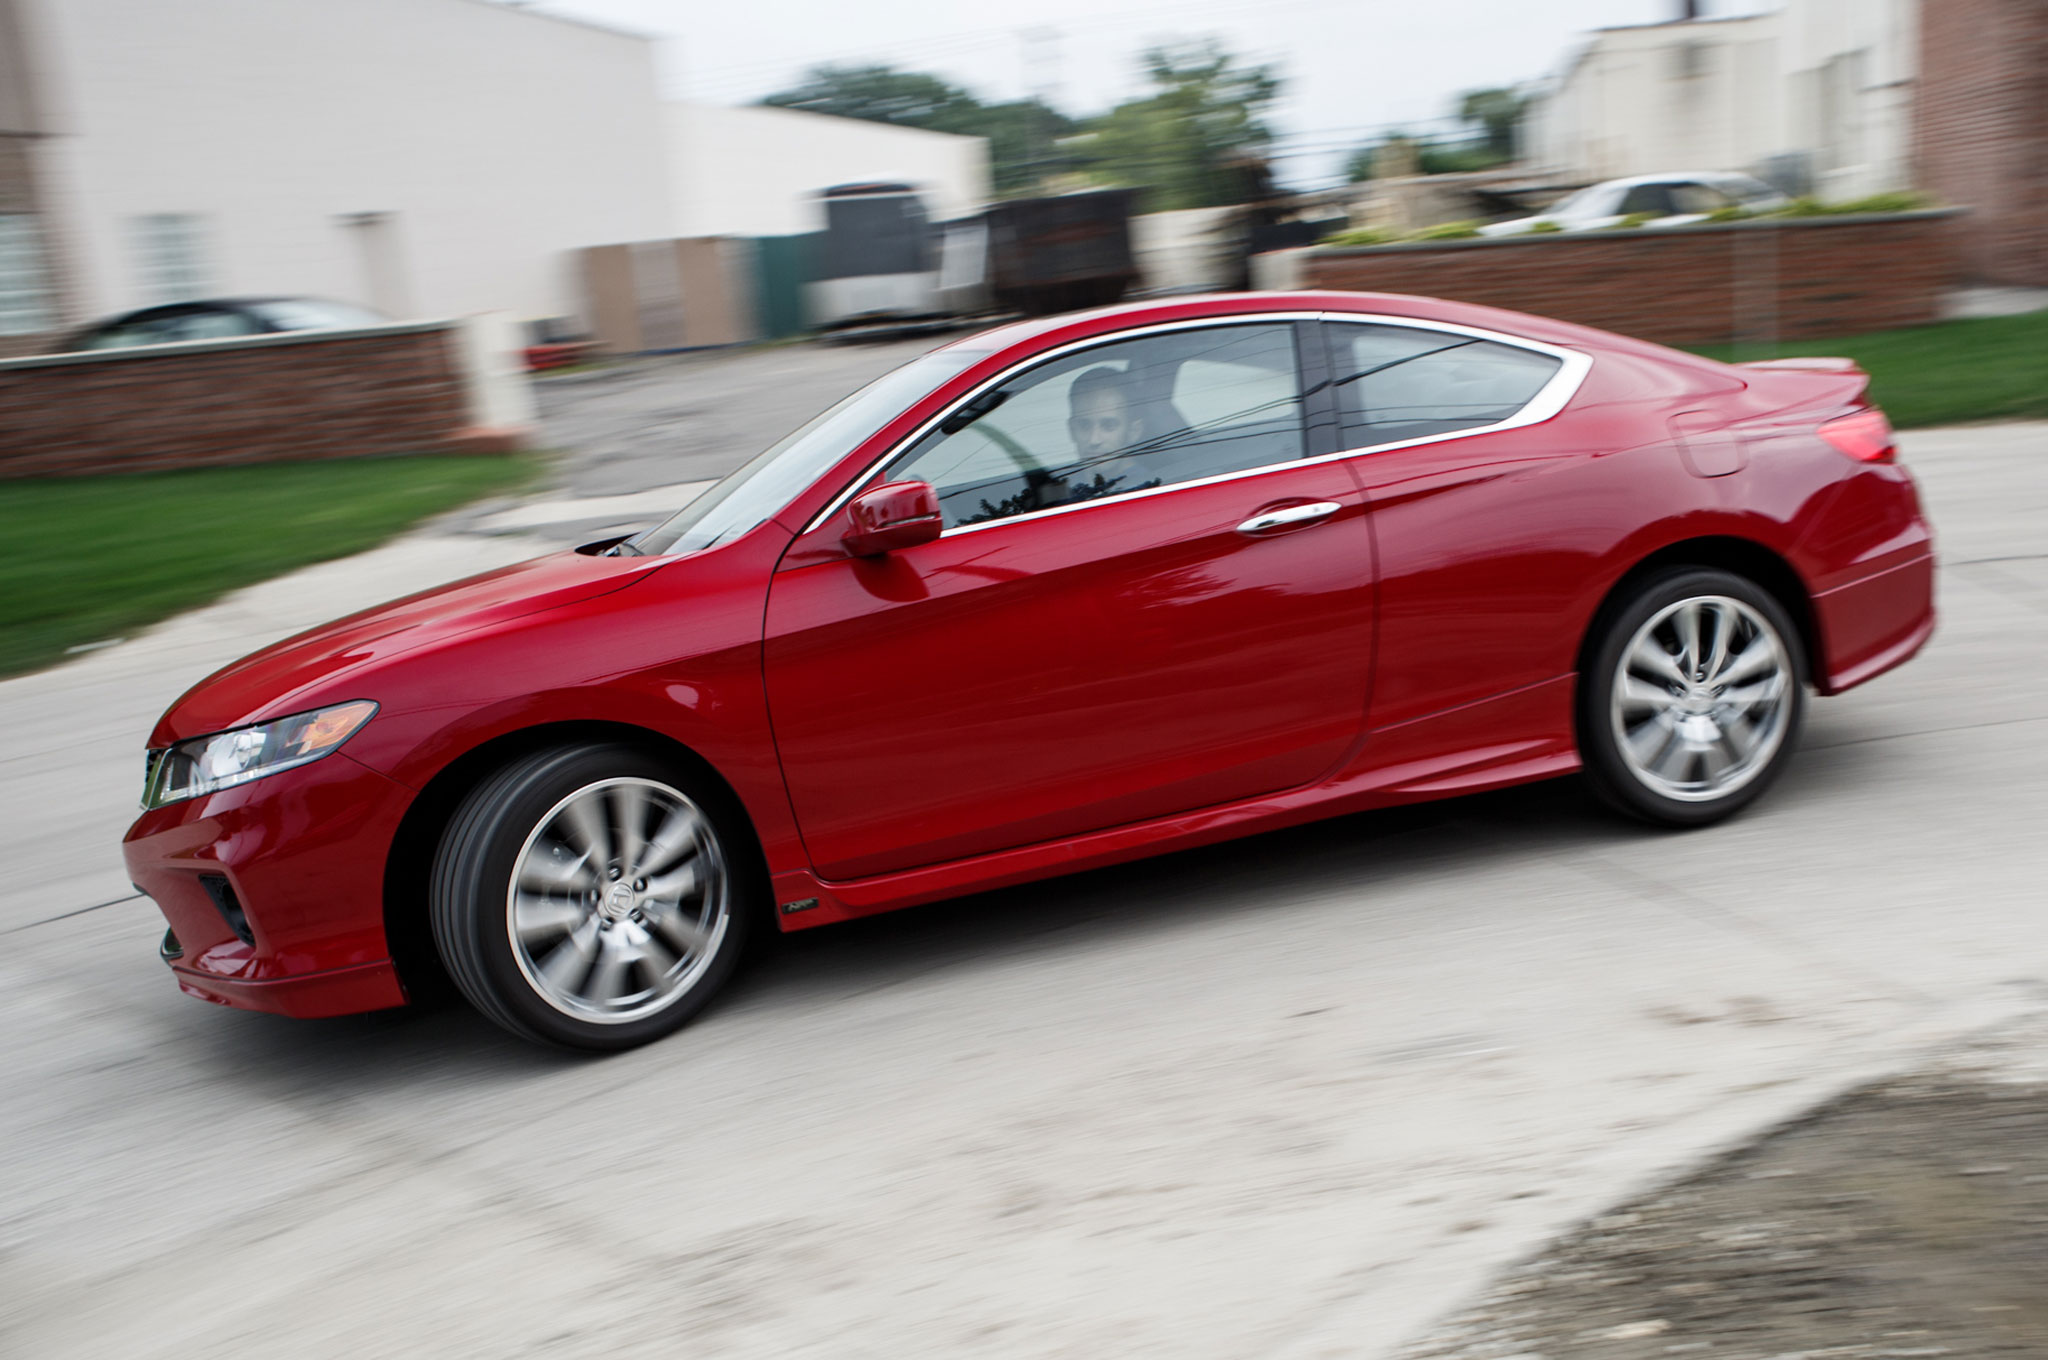 2014 Honda Accord EX-L V-6 - What About the Performance Package?